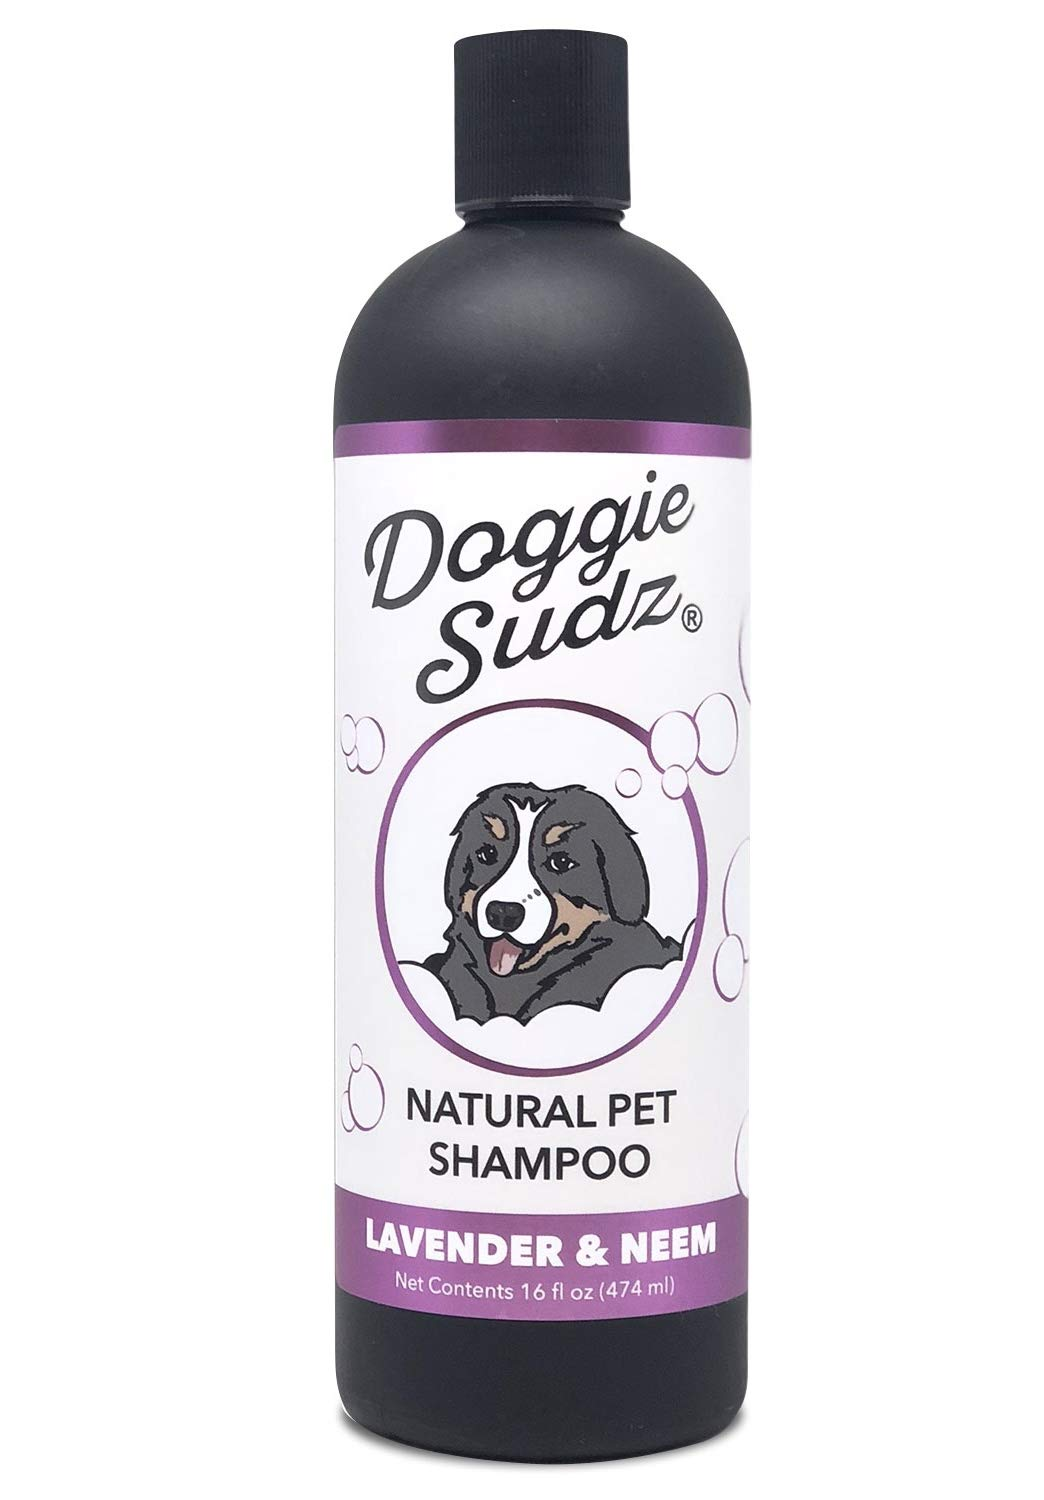 Natural Dog Shampoo and Conditioner by Doggie Sudz, Lavender and Neem, 16 Ounce |  Soothing Hypoallergenic Dog Shampoo Infused with Neem Oil for Itchy Skin Relief and Silky Smooth Fur